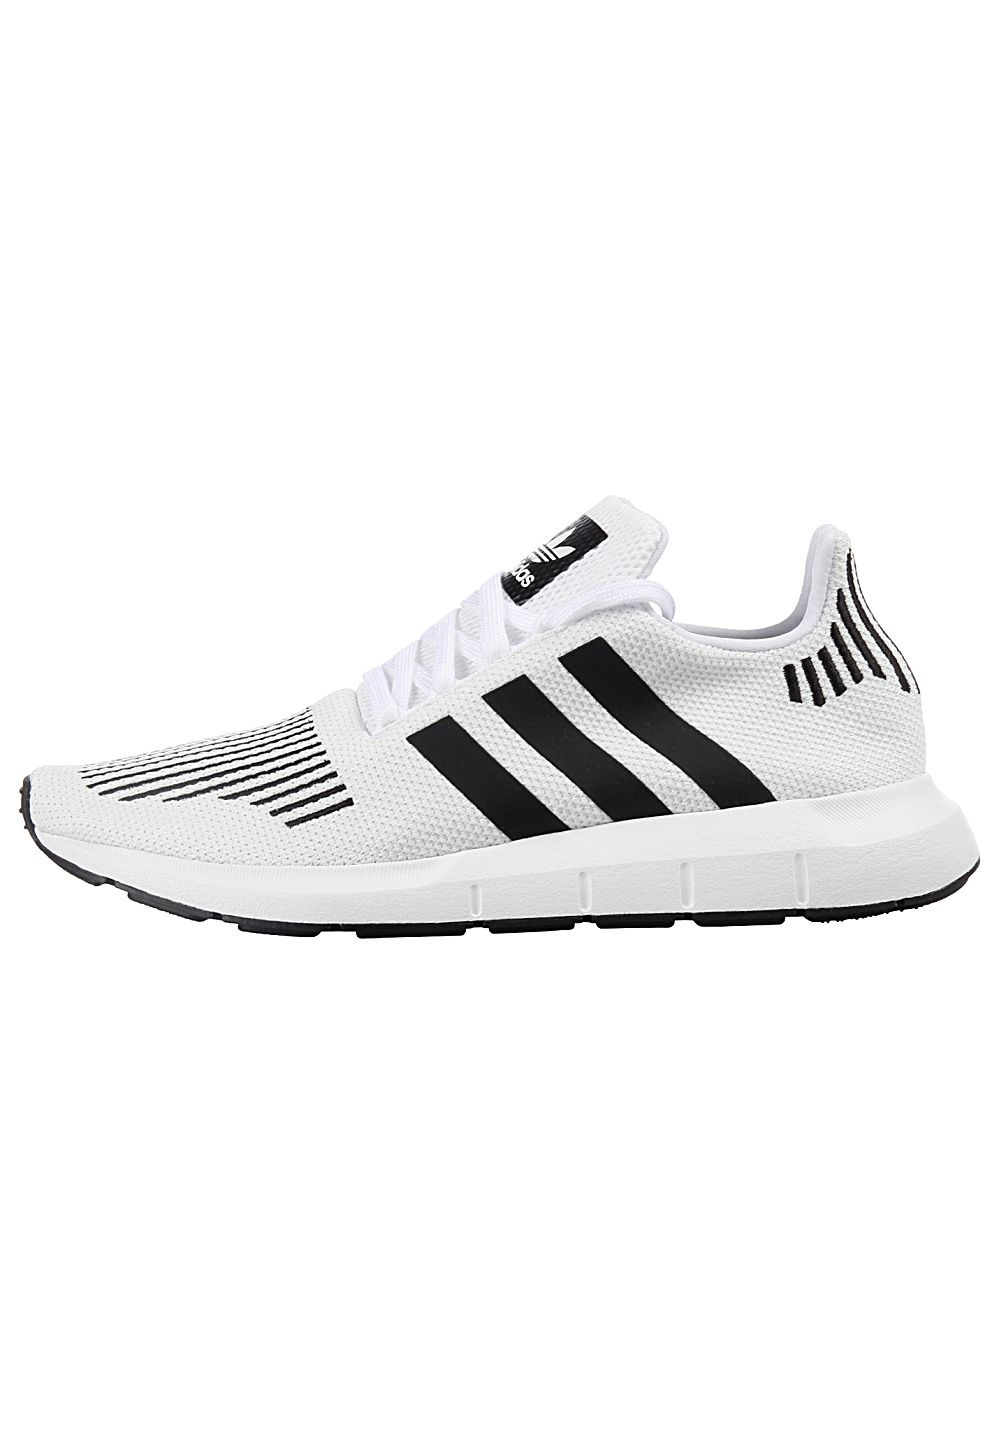 the best attitude 38d99 8aa14 Adidas Swift Run - Baskets pour Homme - Blanc